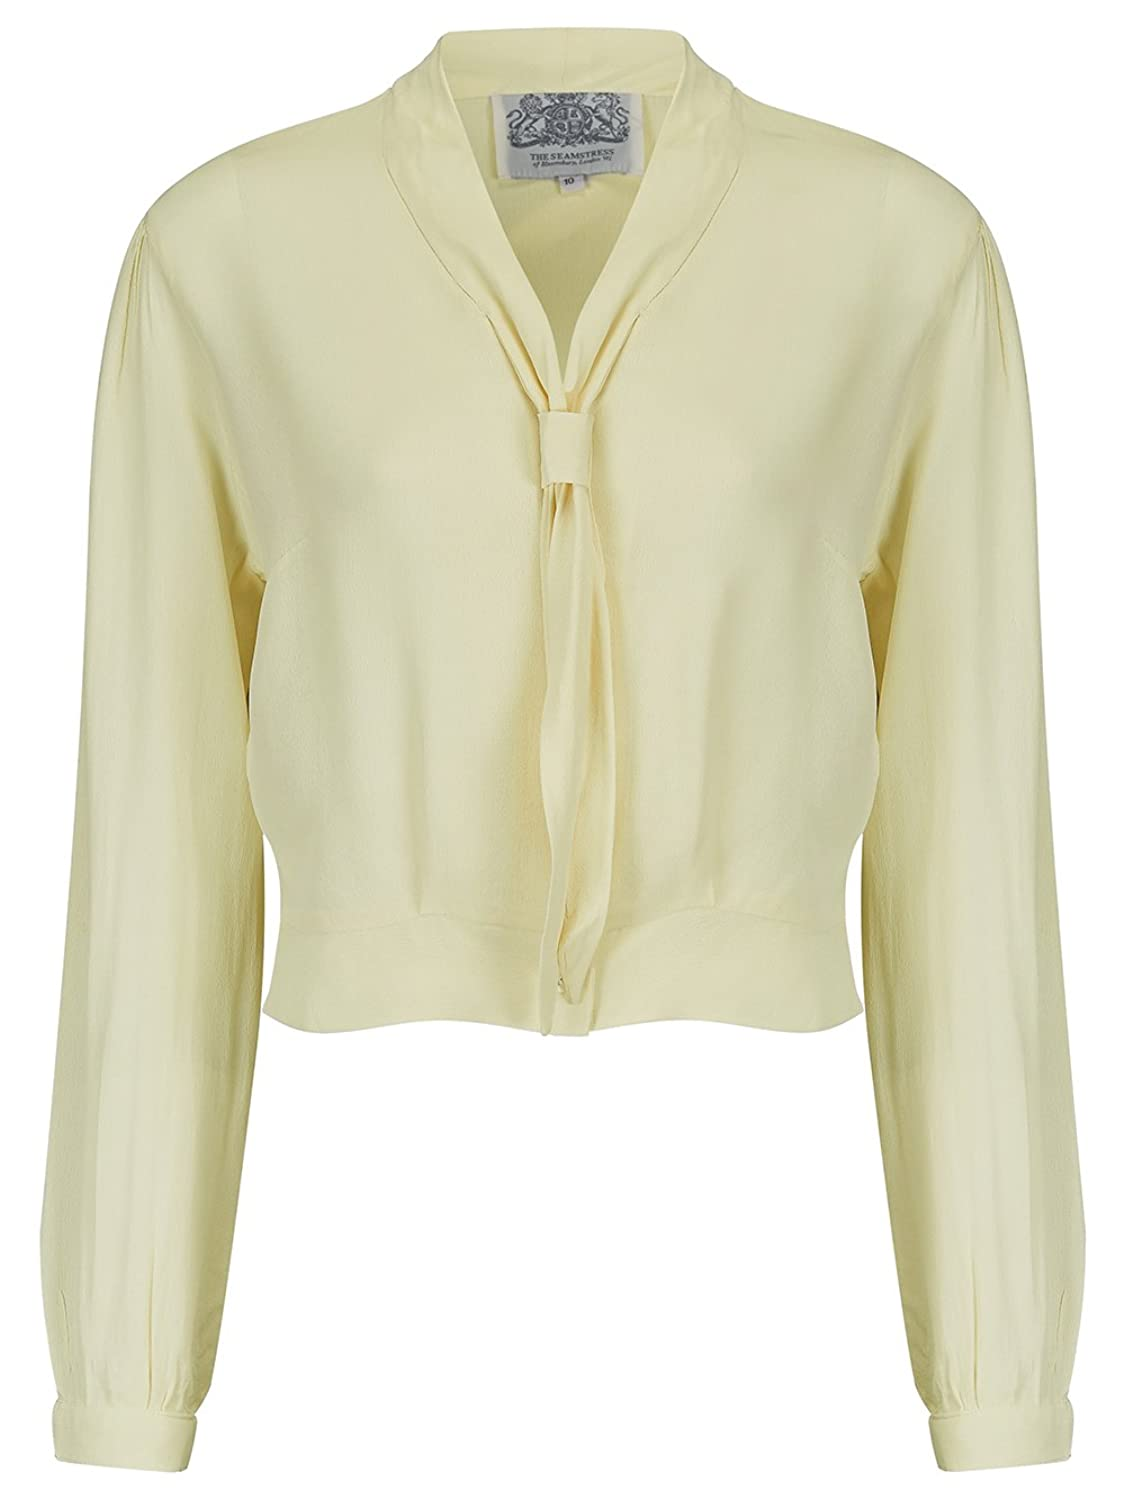 1940s Blouses, Shirts and Tops Fashion History 1940s Authentic Vintage Inspired Bonnie Blouse with Long Sleeve in Cream by The Seamstress of Bloomsbury �39.00 AT vintagedancer.com